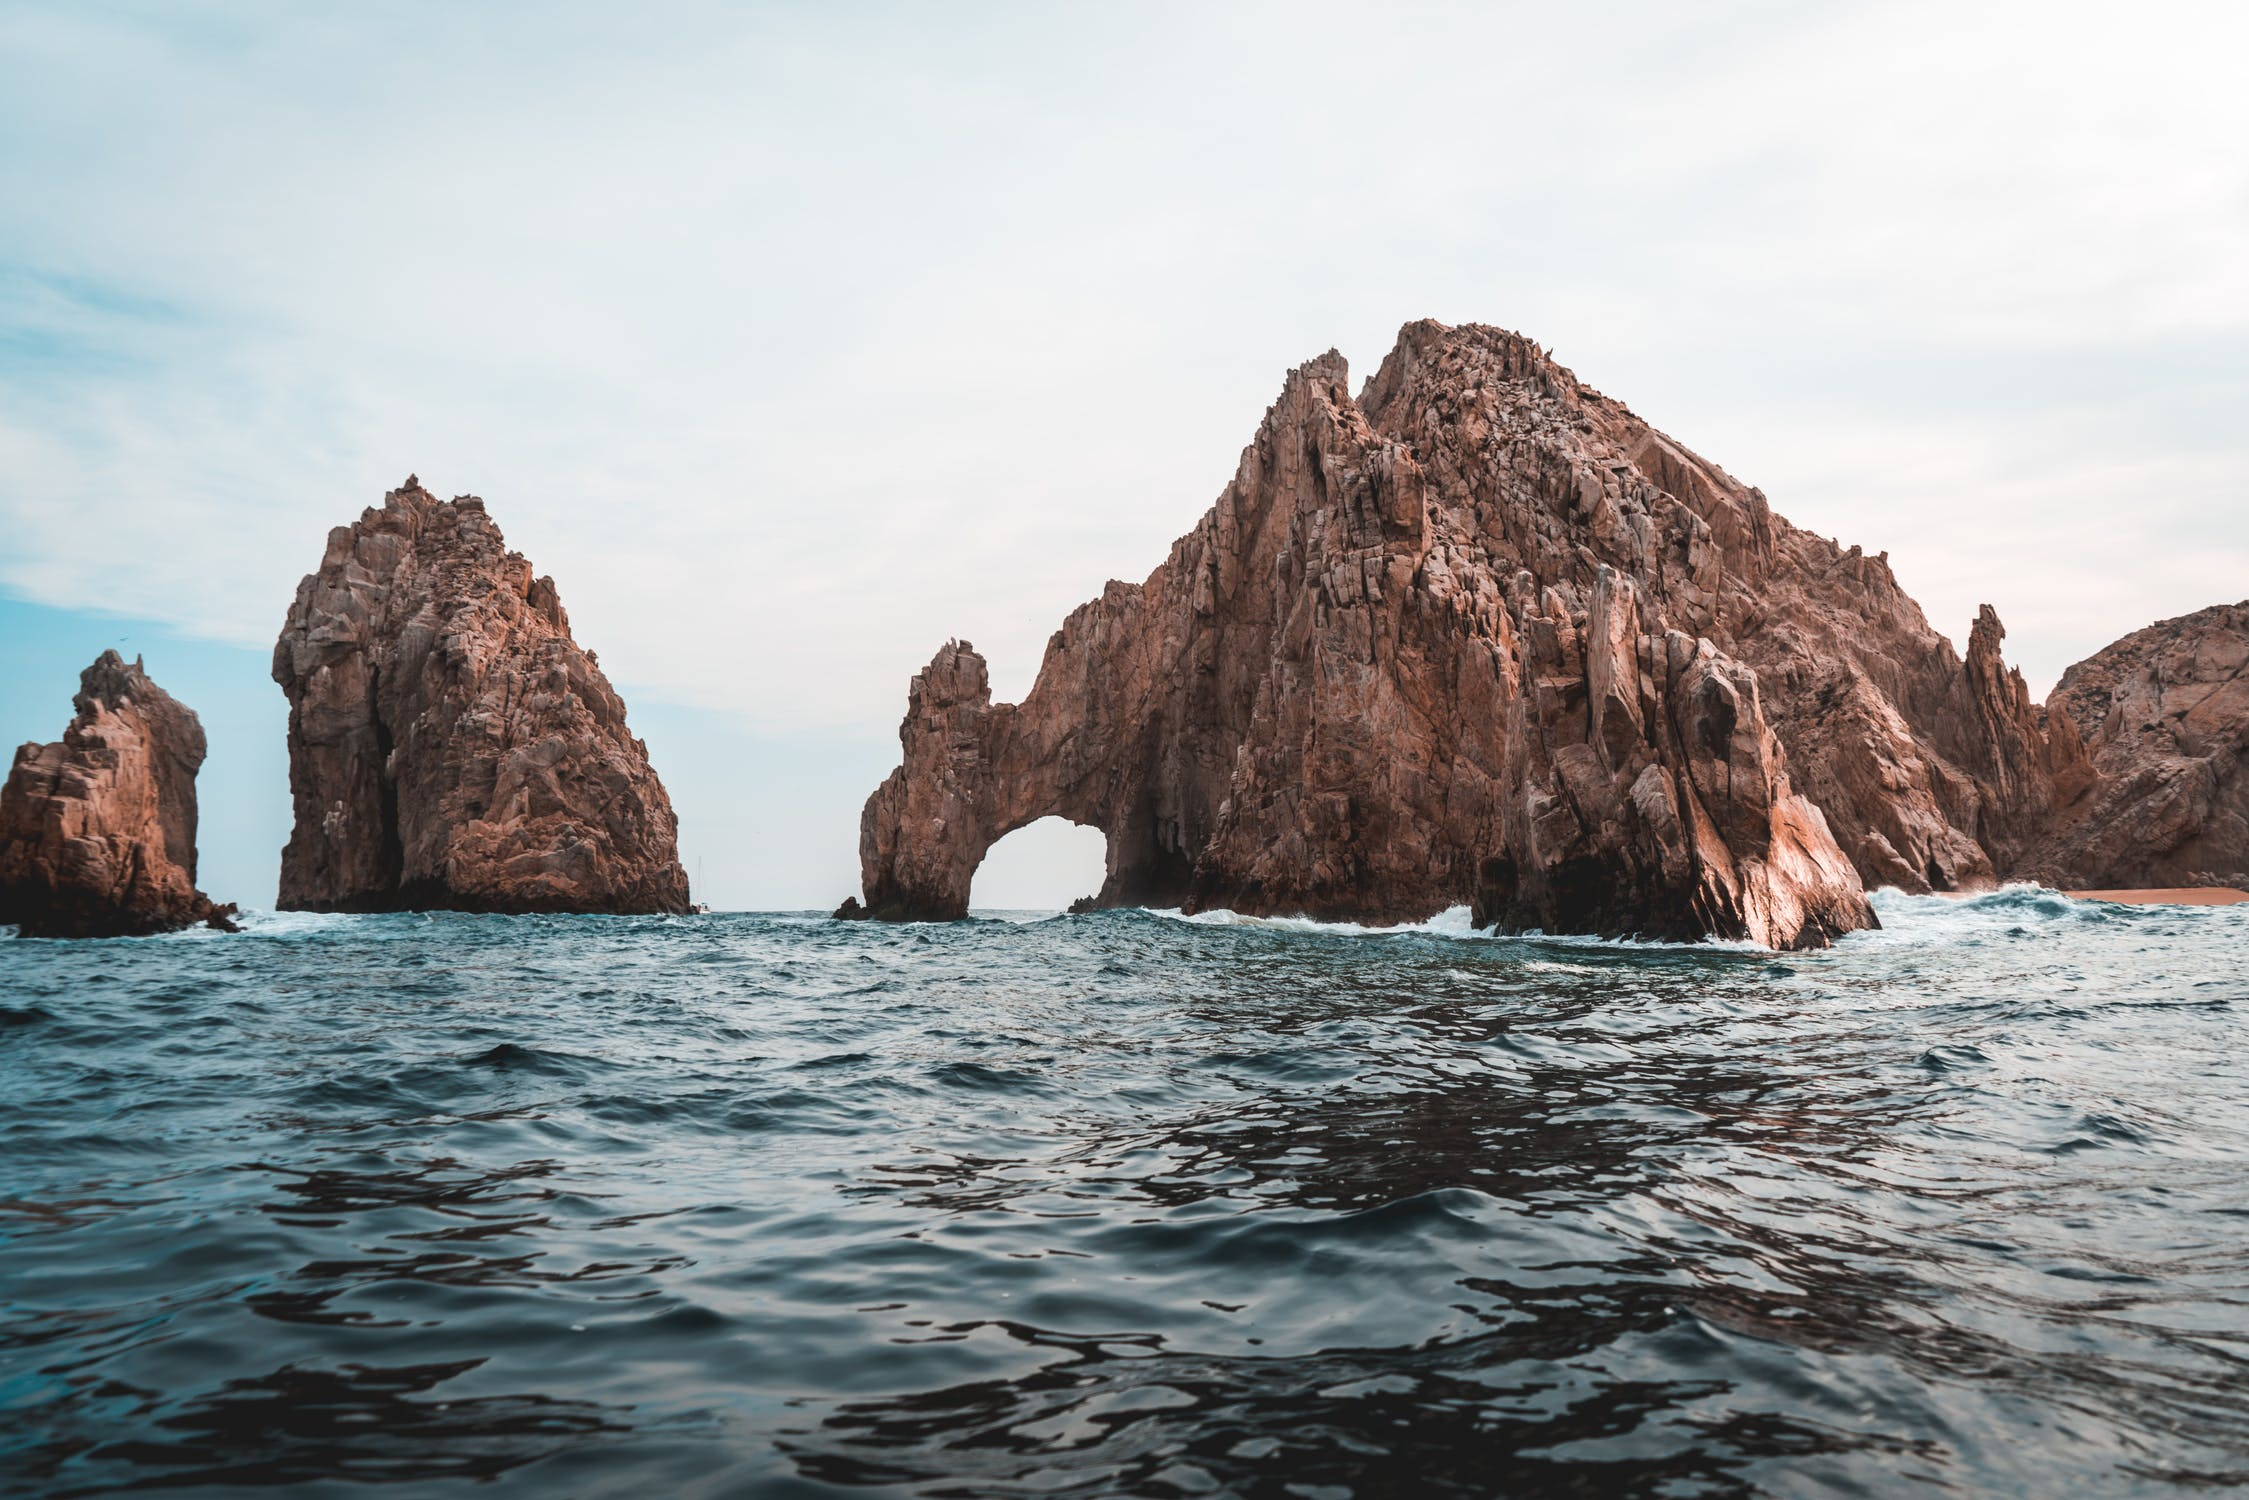 Princess – Where Would You Rather Be? Cabo San Lucas Edition